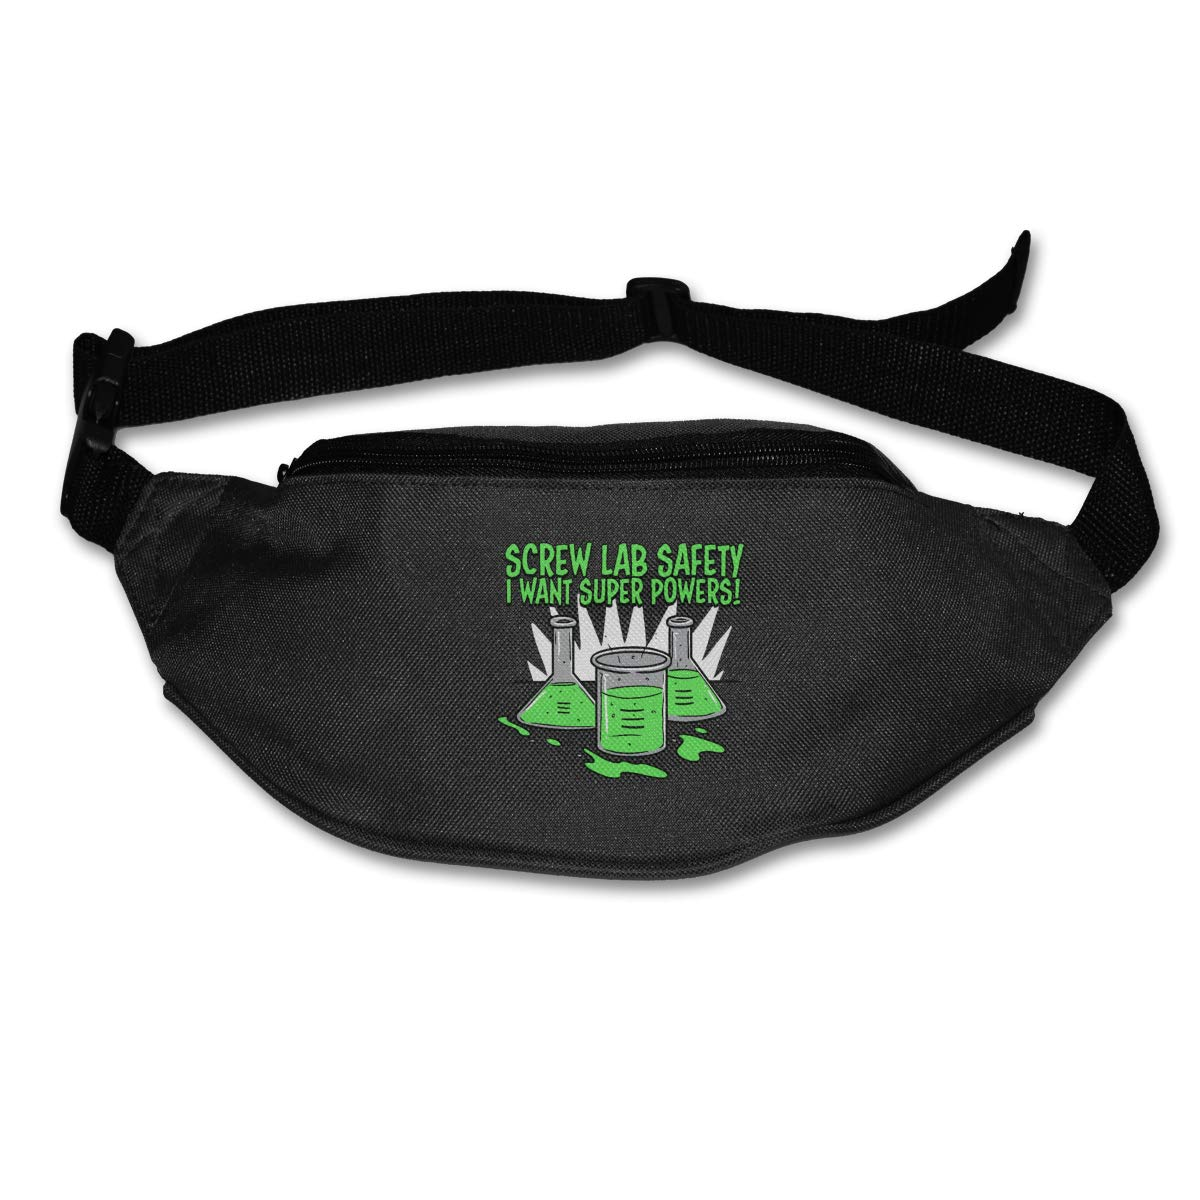 Screw Lab Safety I Want Super Powers Sport Waist Packs Fanny Pack Adjustable